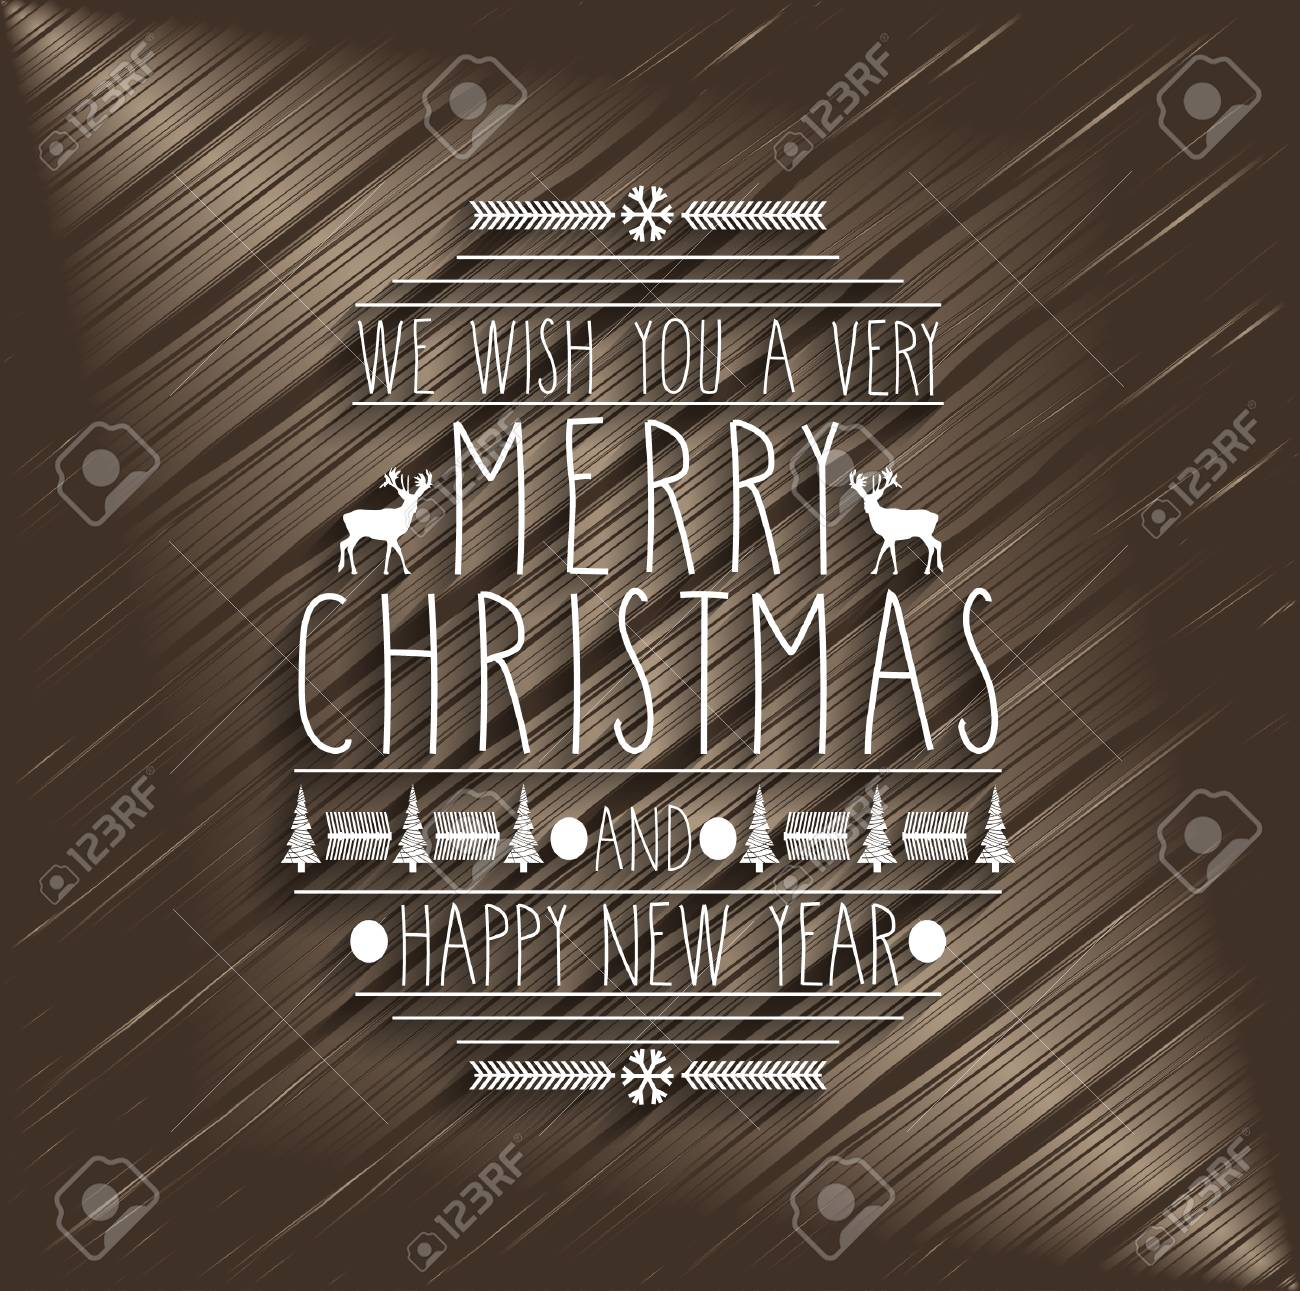 merry christmas design greeting card handwritten text on wooden background happy new year message